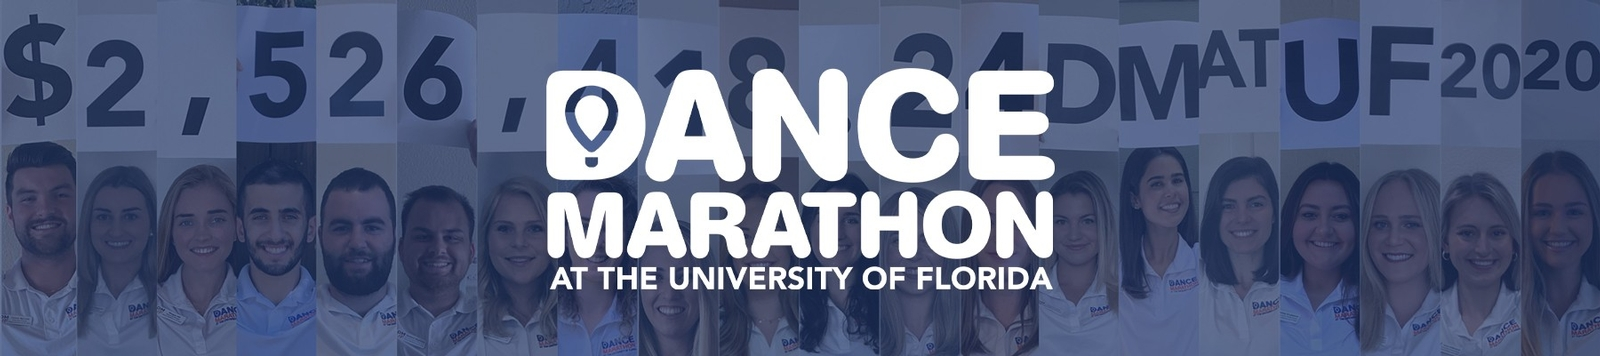 UNTIL DANCE MARATHON AT UF